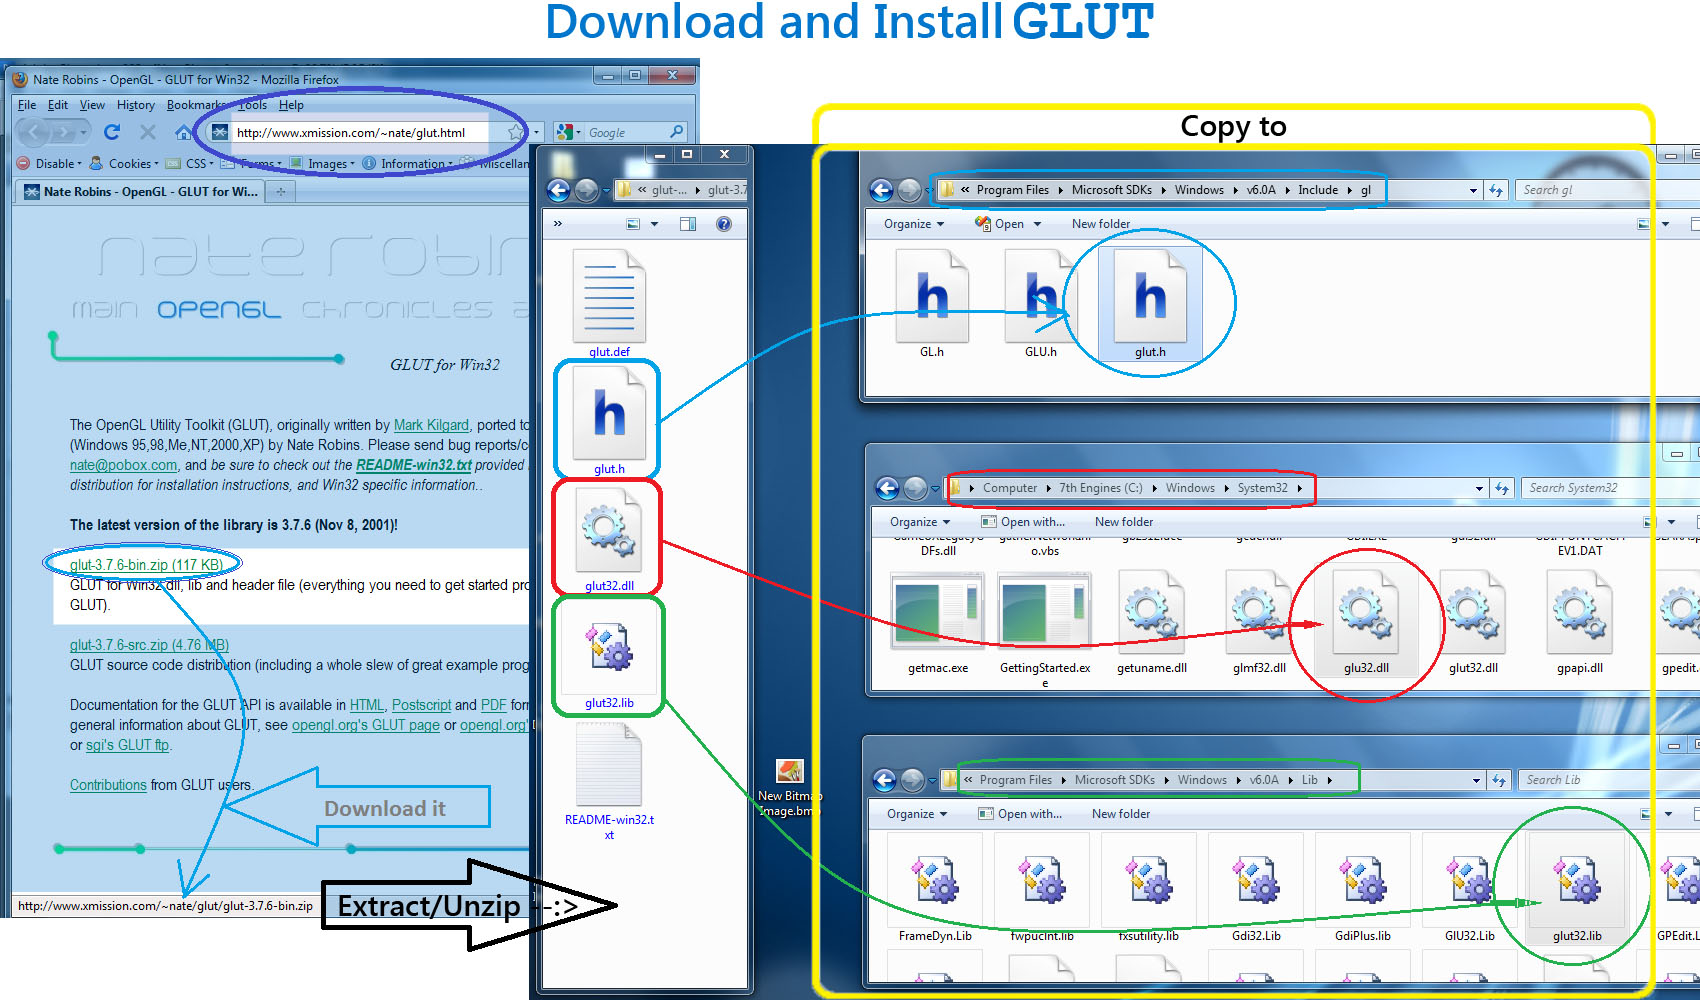 Download and Install GLUT